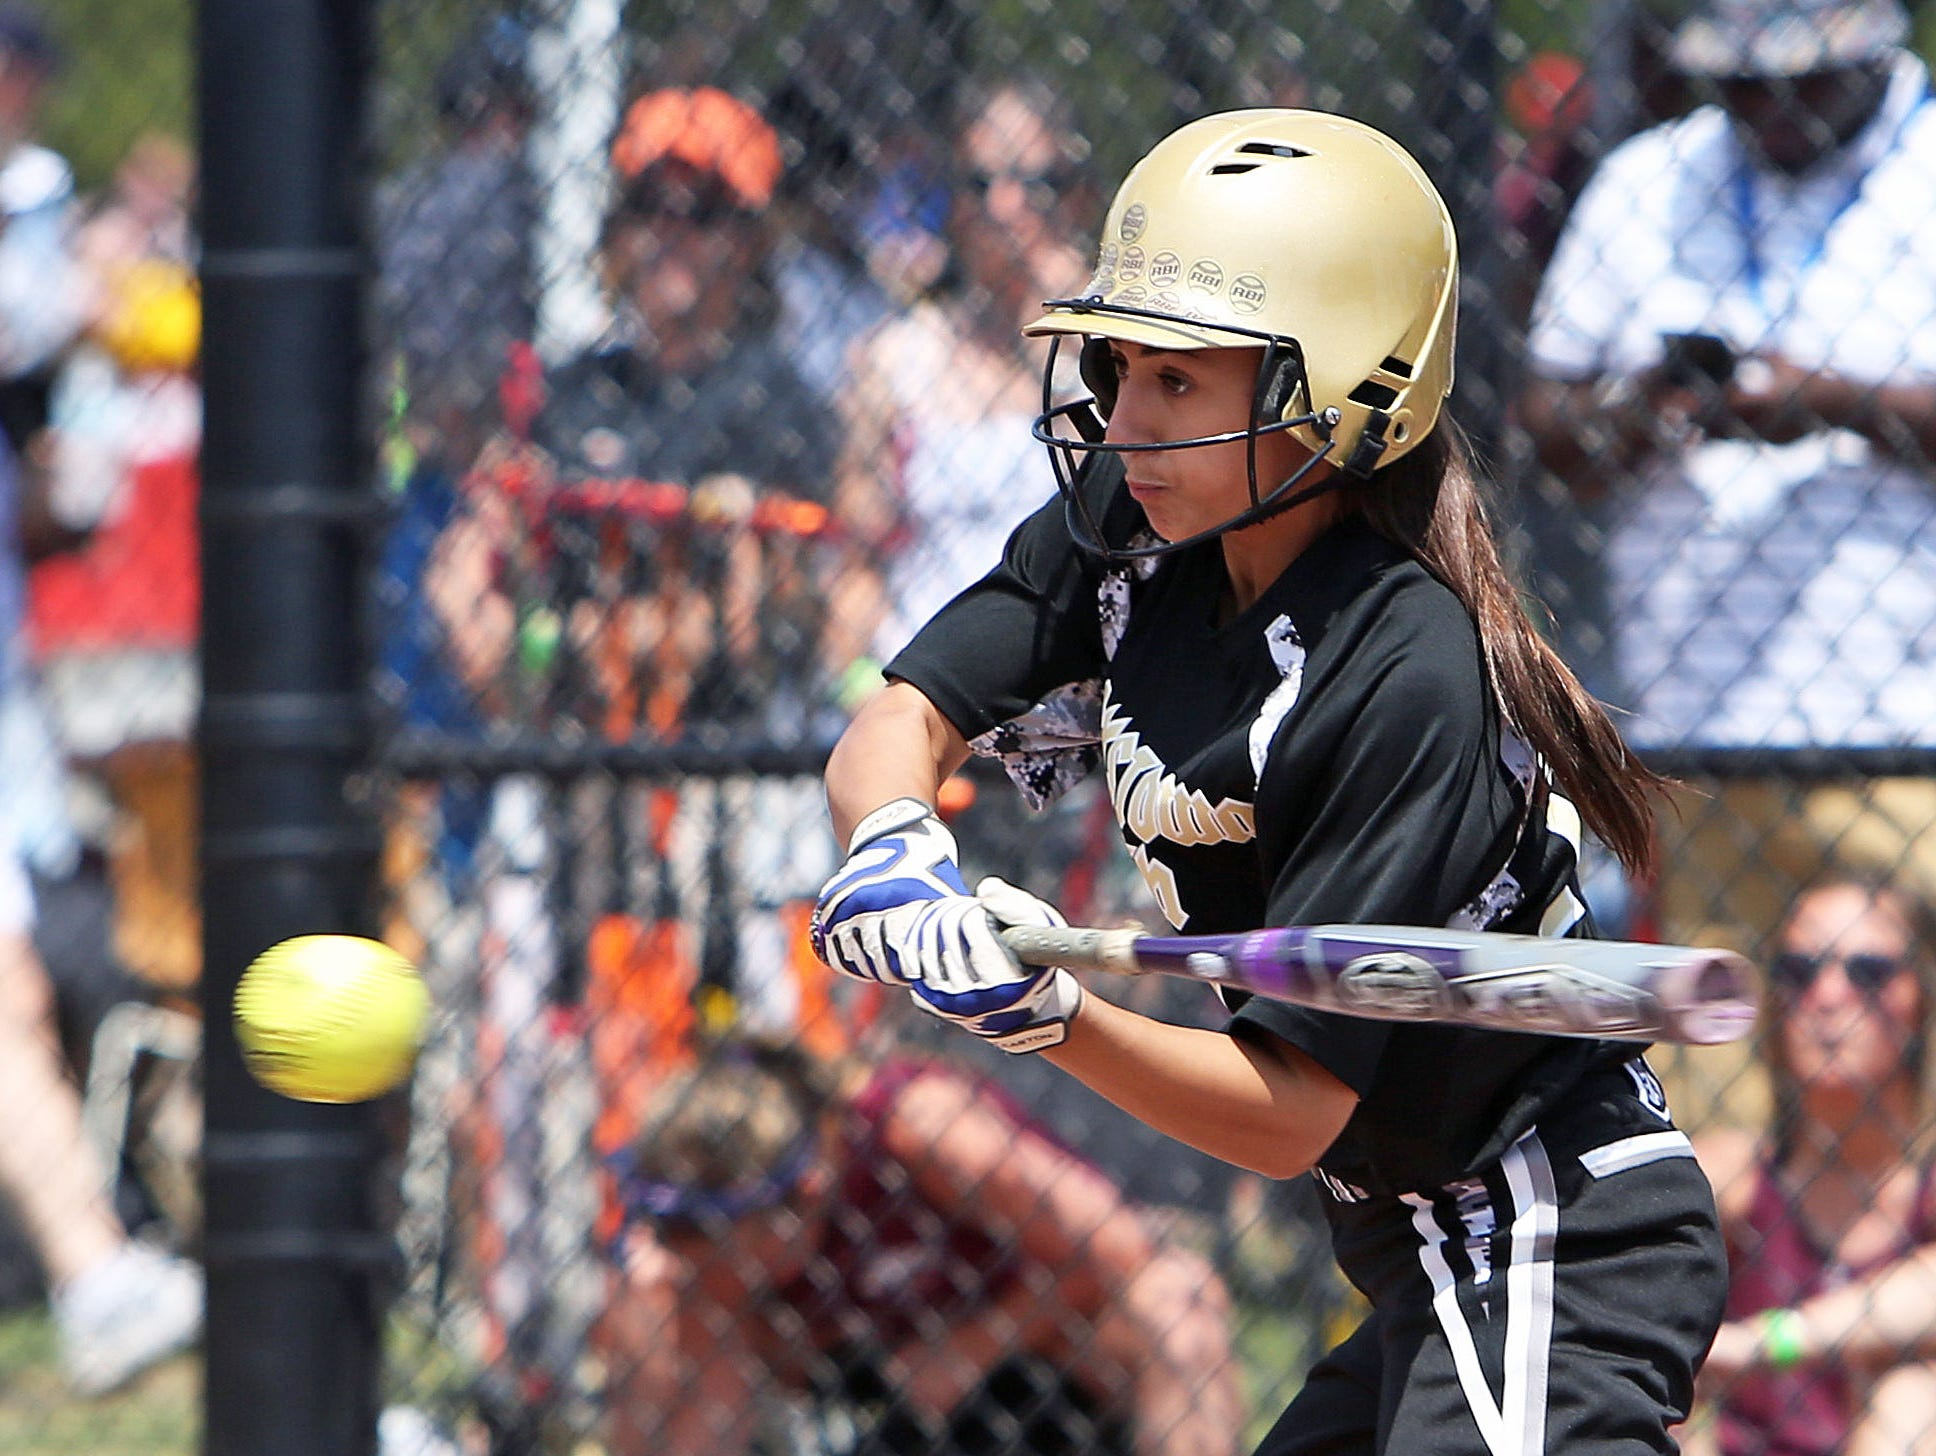 Orchard Park defeated Clarkstown South 9-6 in the class AA NYSPHSAA girls softball semifinal in South Glens Falls June 13, 2015.